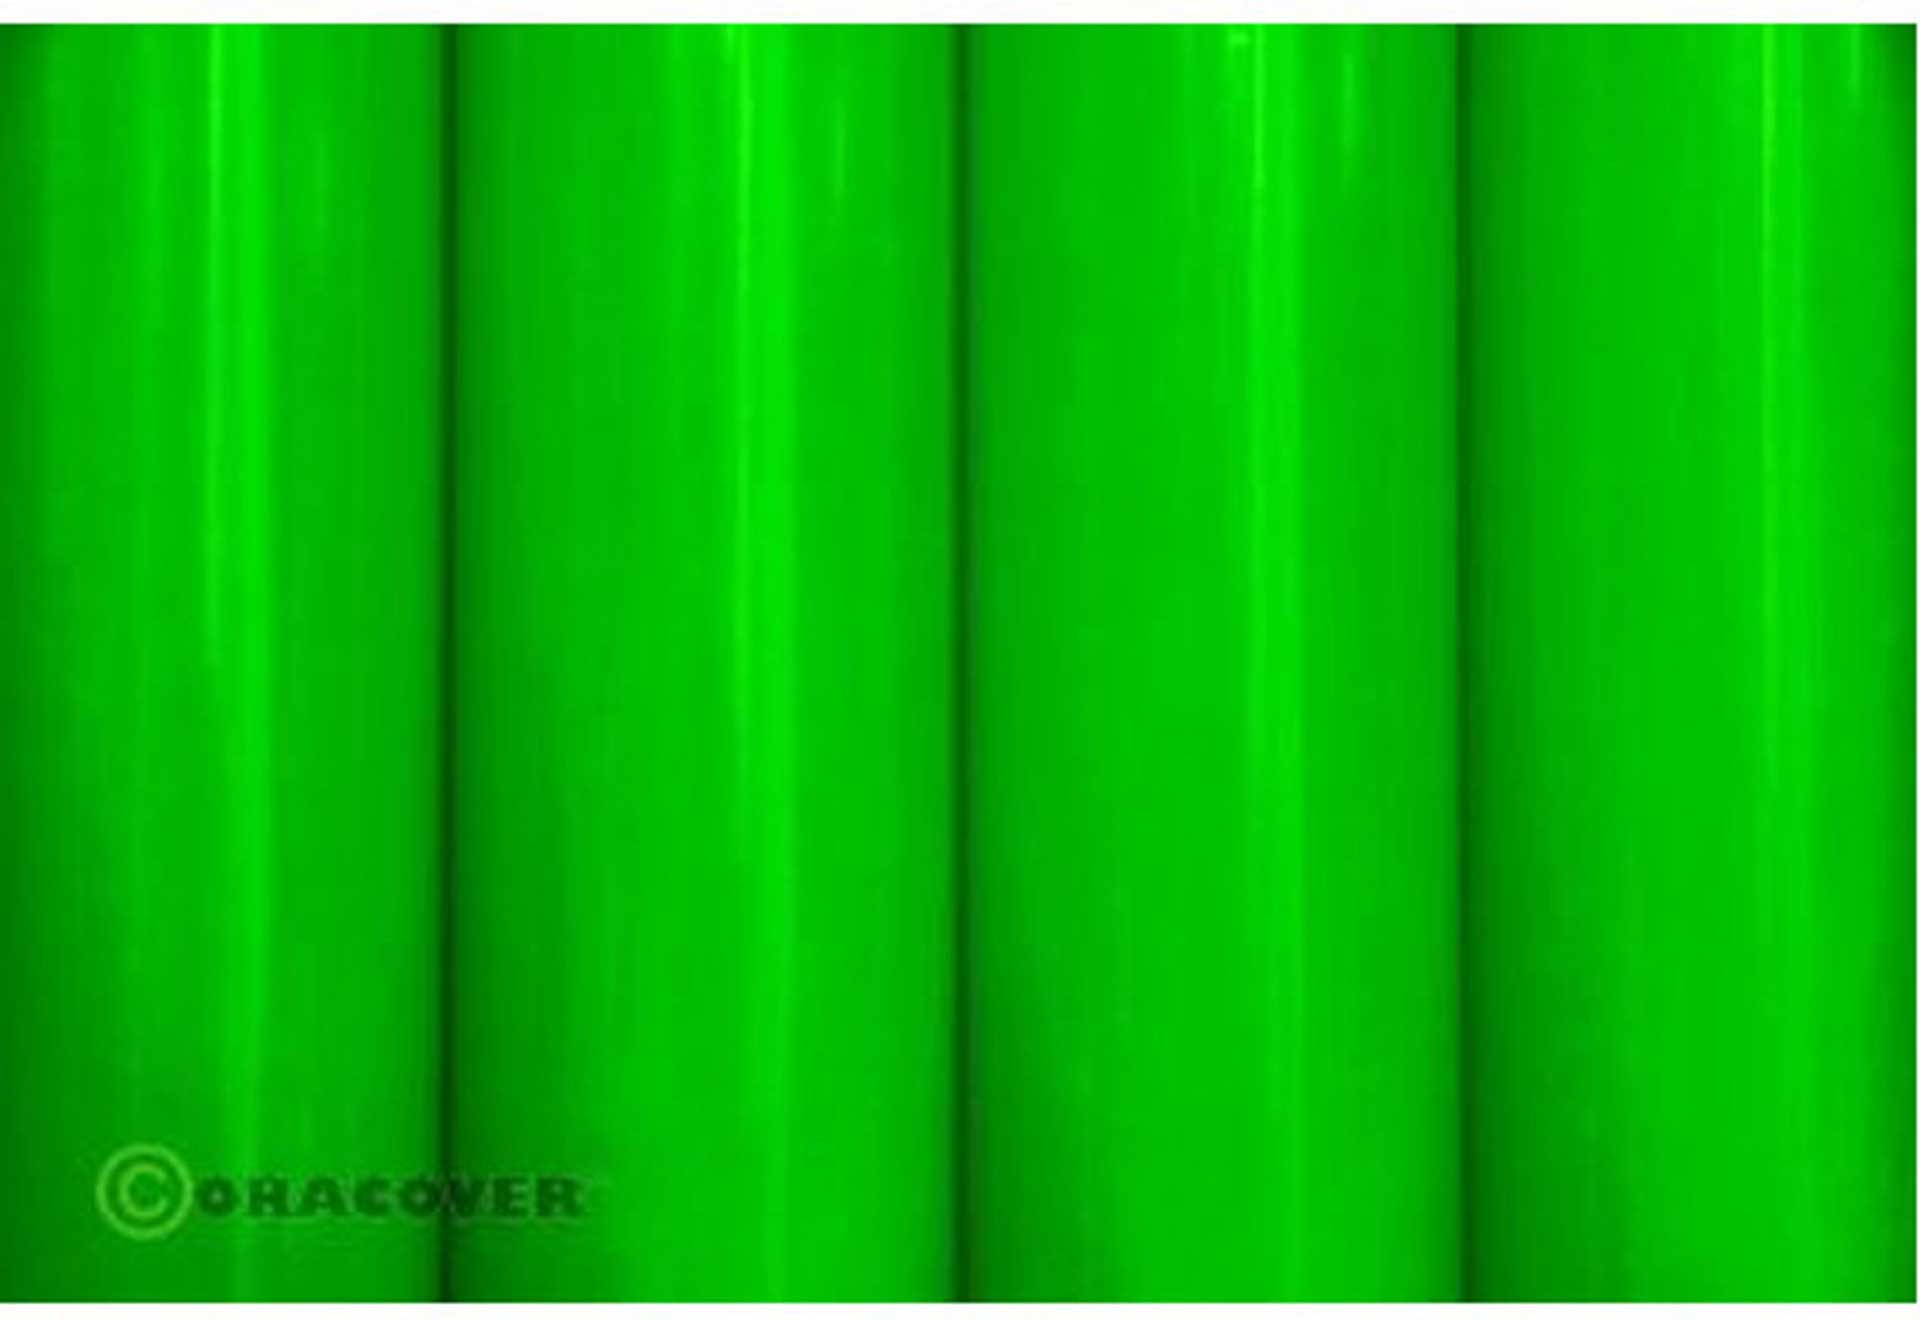 ORACOVER Adhesive Foil GREEN FLUORESCENT 3 Meter # 41 Orastick